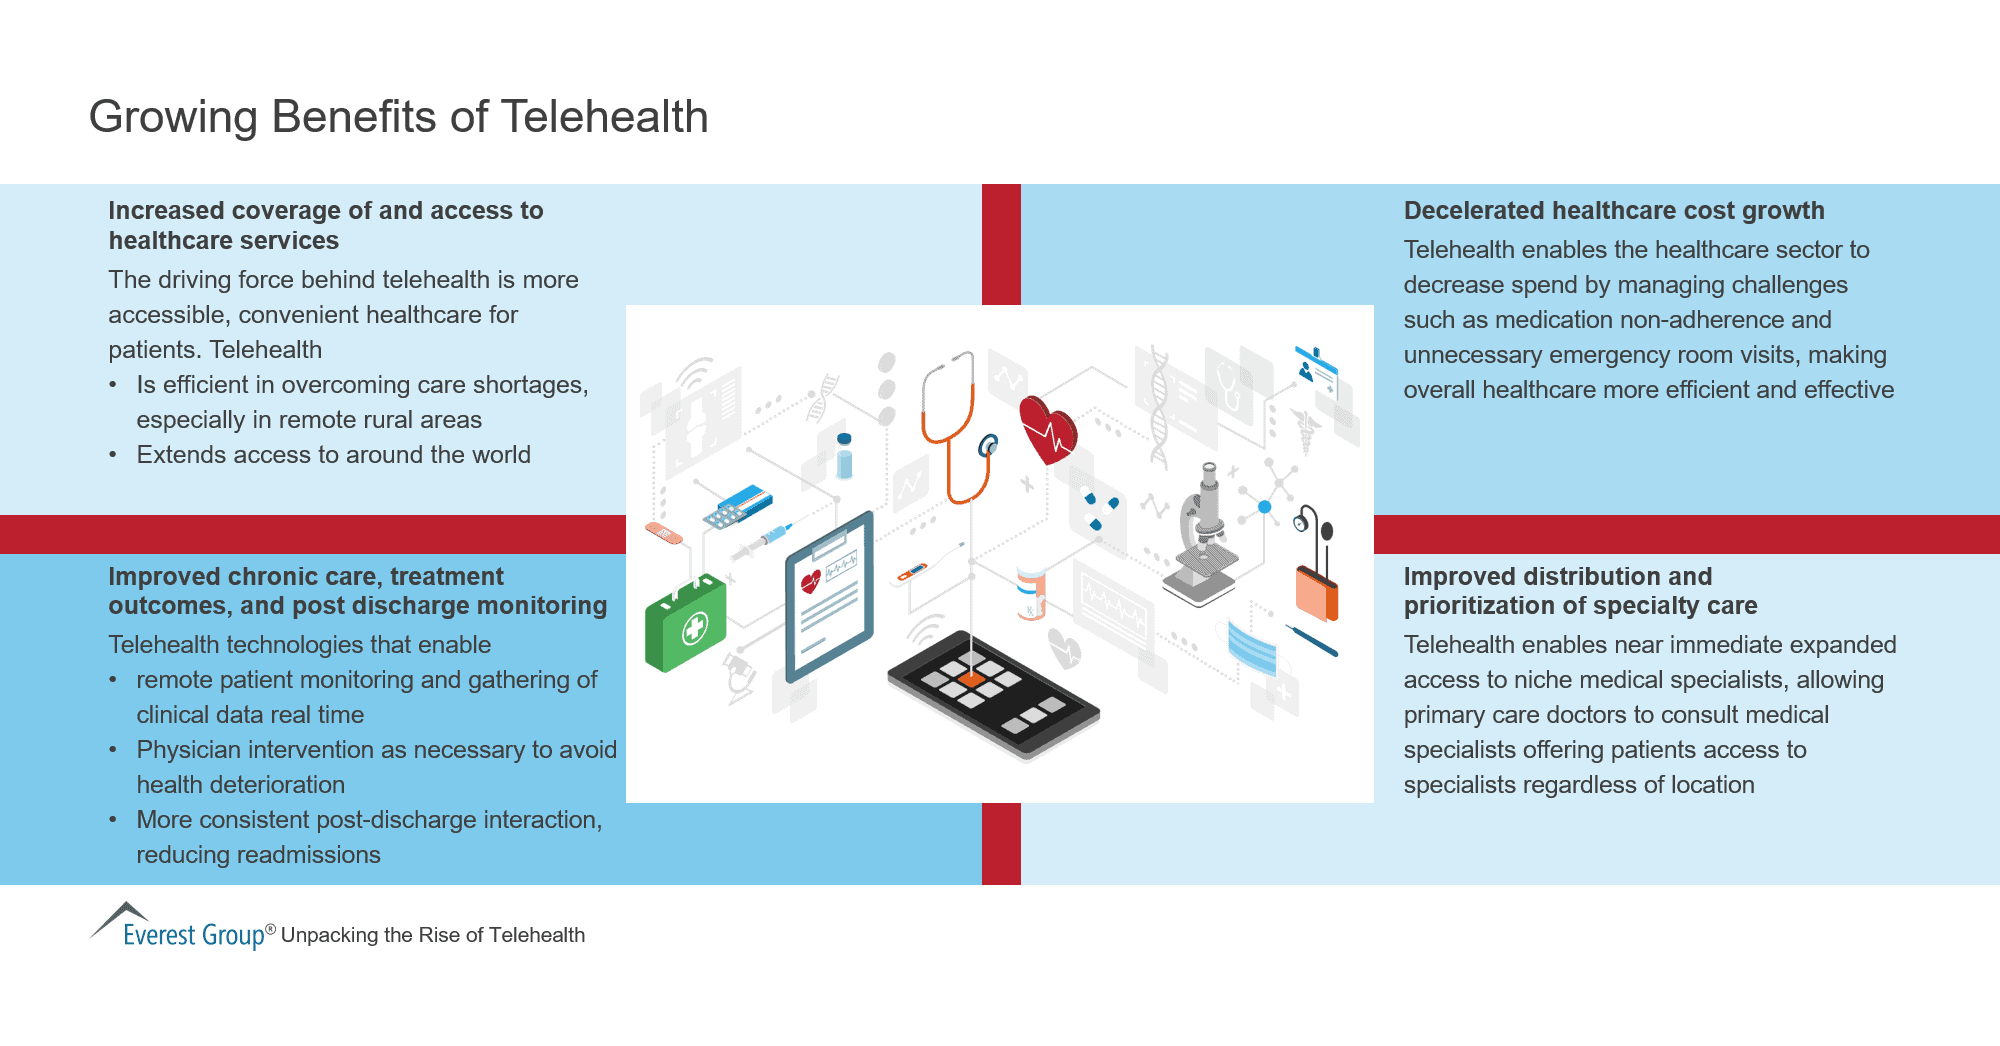 Growing Benefits of Telehealth